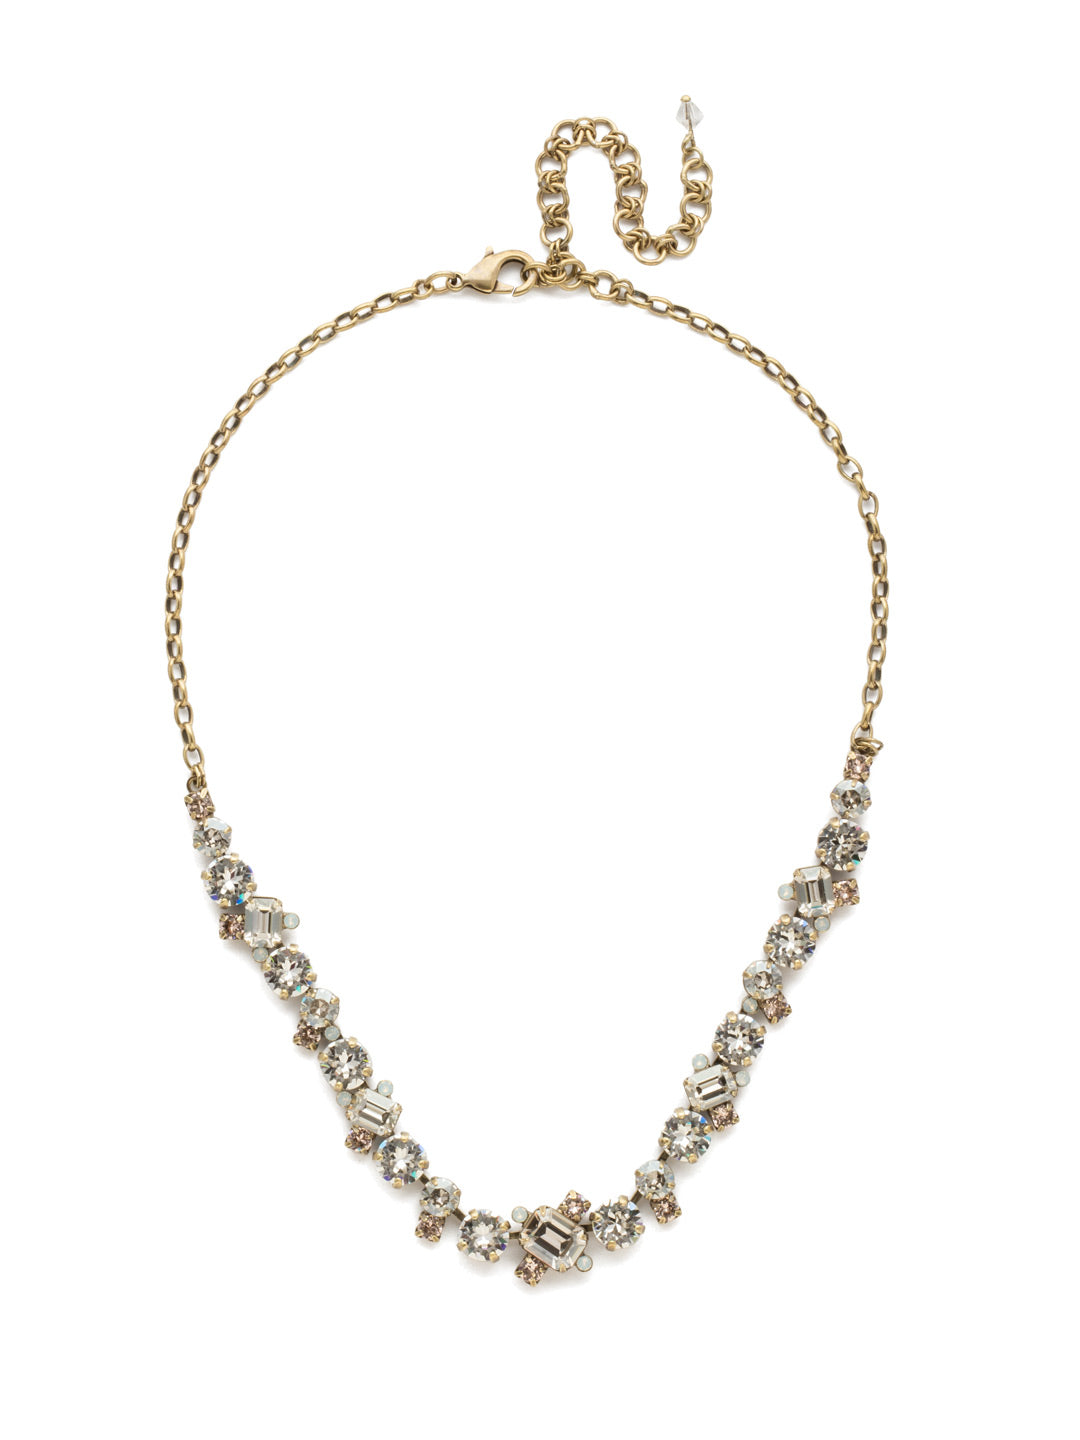 Novelty Multi-Cut Crystal Necklace - NDB78AGCLA